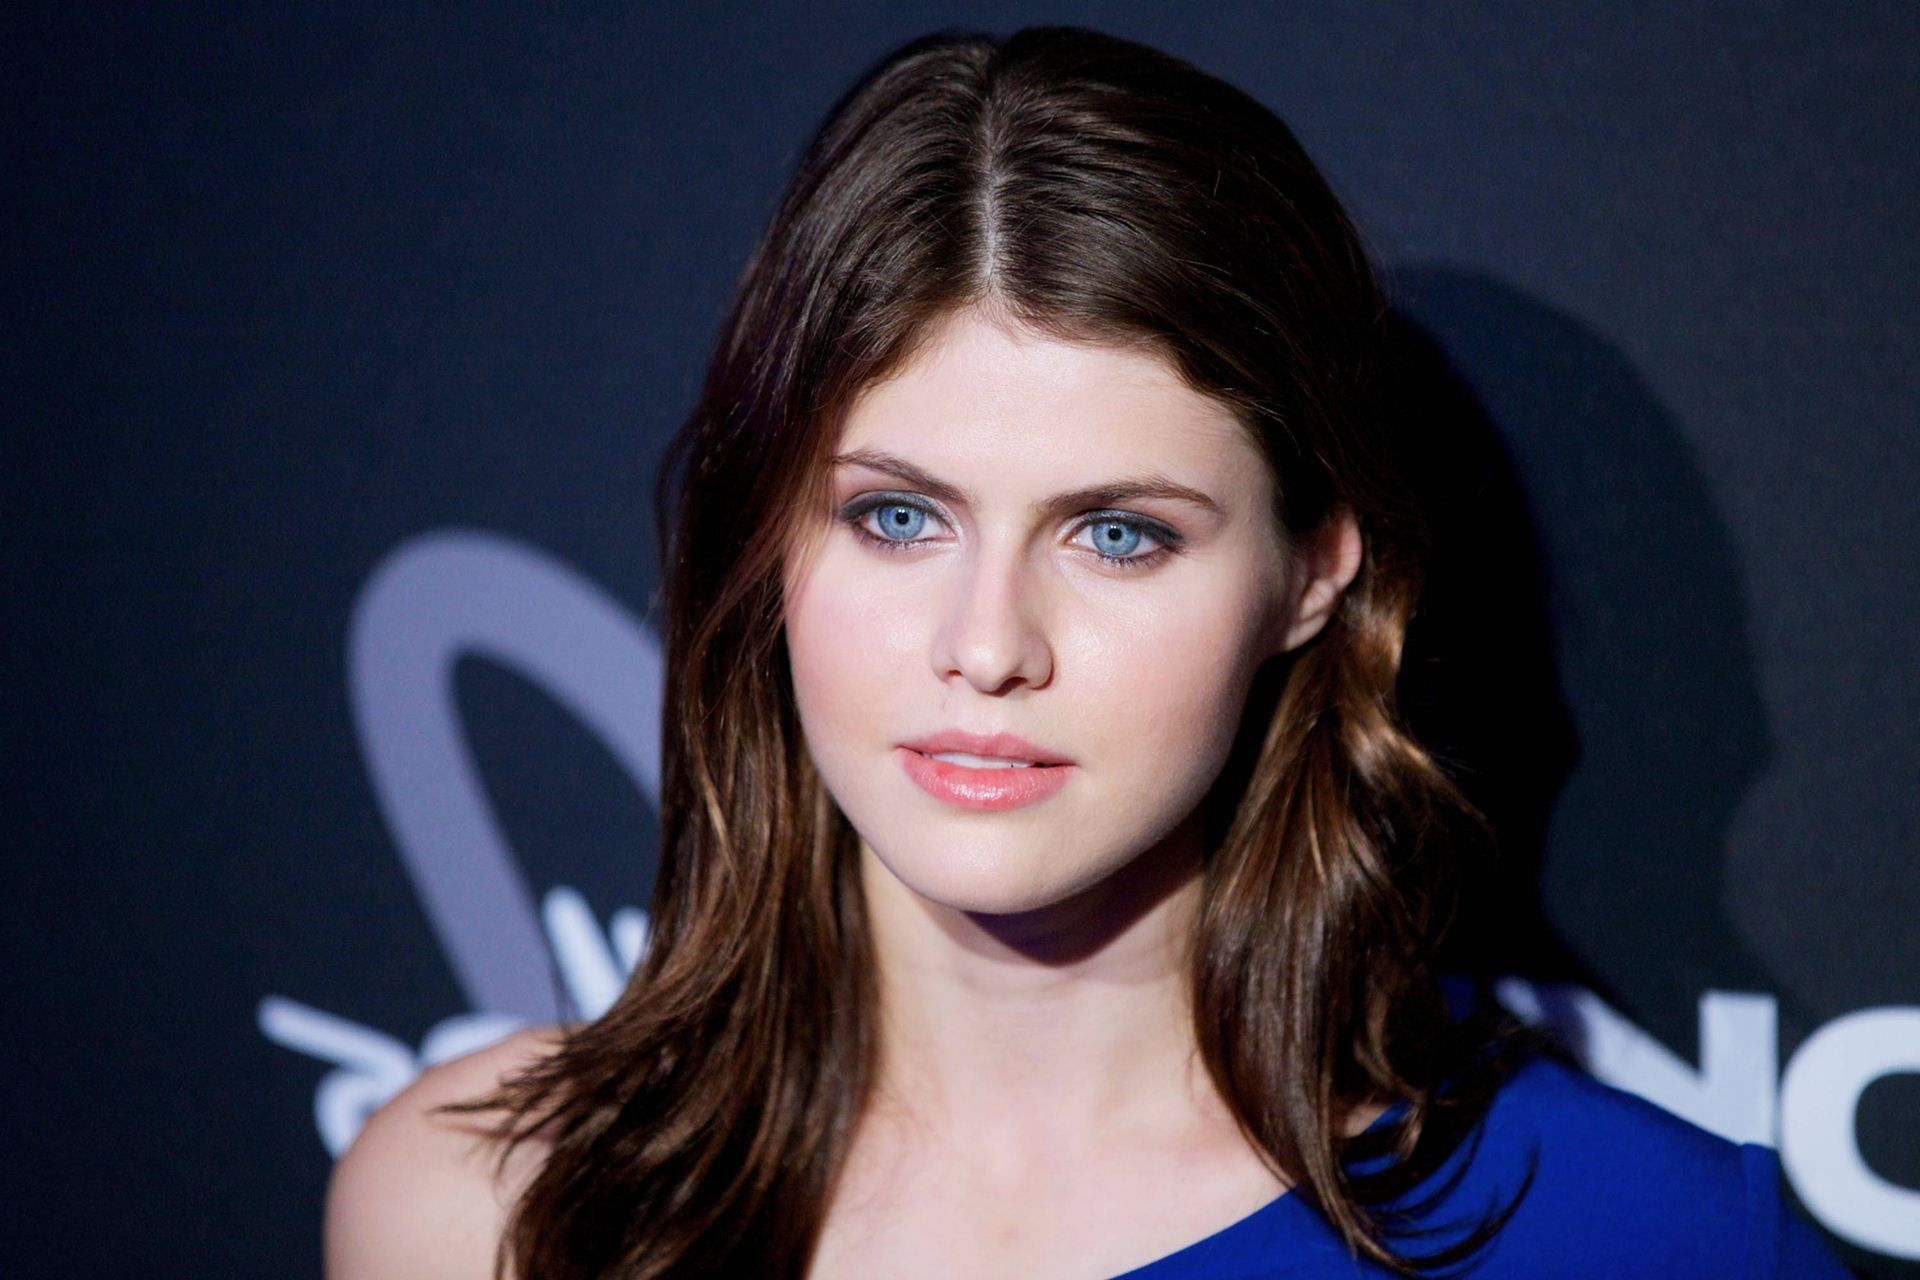 alexandra daddario jimmy kimmelalexandra daddario фильмы, alexandra daddario imdb, alexandra daddario вики, alexandra daddario matt bomer, alexandra daddario gif hunt tumblr, alexandra daddario percy jackson, alexandra daddario wdw, alexandra daddario esquire, alexandra daddario theplace, alexandra daddario no makeup, alexandra daddario sebastian stan, alexandra daddario run, alexandra daddario filmography, alexandra daddario roanoke, alexandra daddario wikipedia, alexandra daddario crackship, alexandra daddario jimmy kimmel, alexandra daddario vanity fair magazine, alexandra daddario quotes, alexandra daddario vs. emma watson